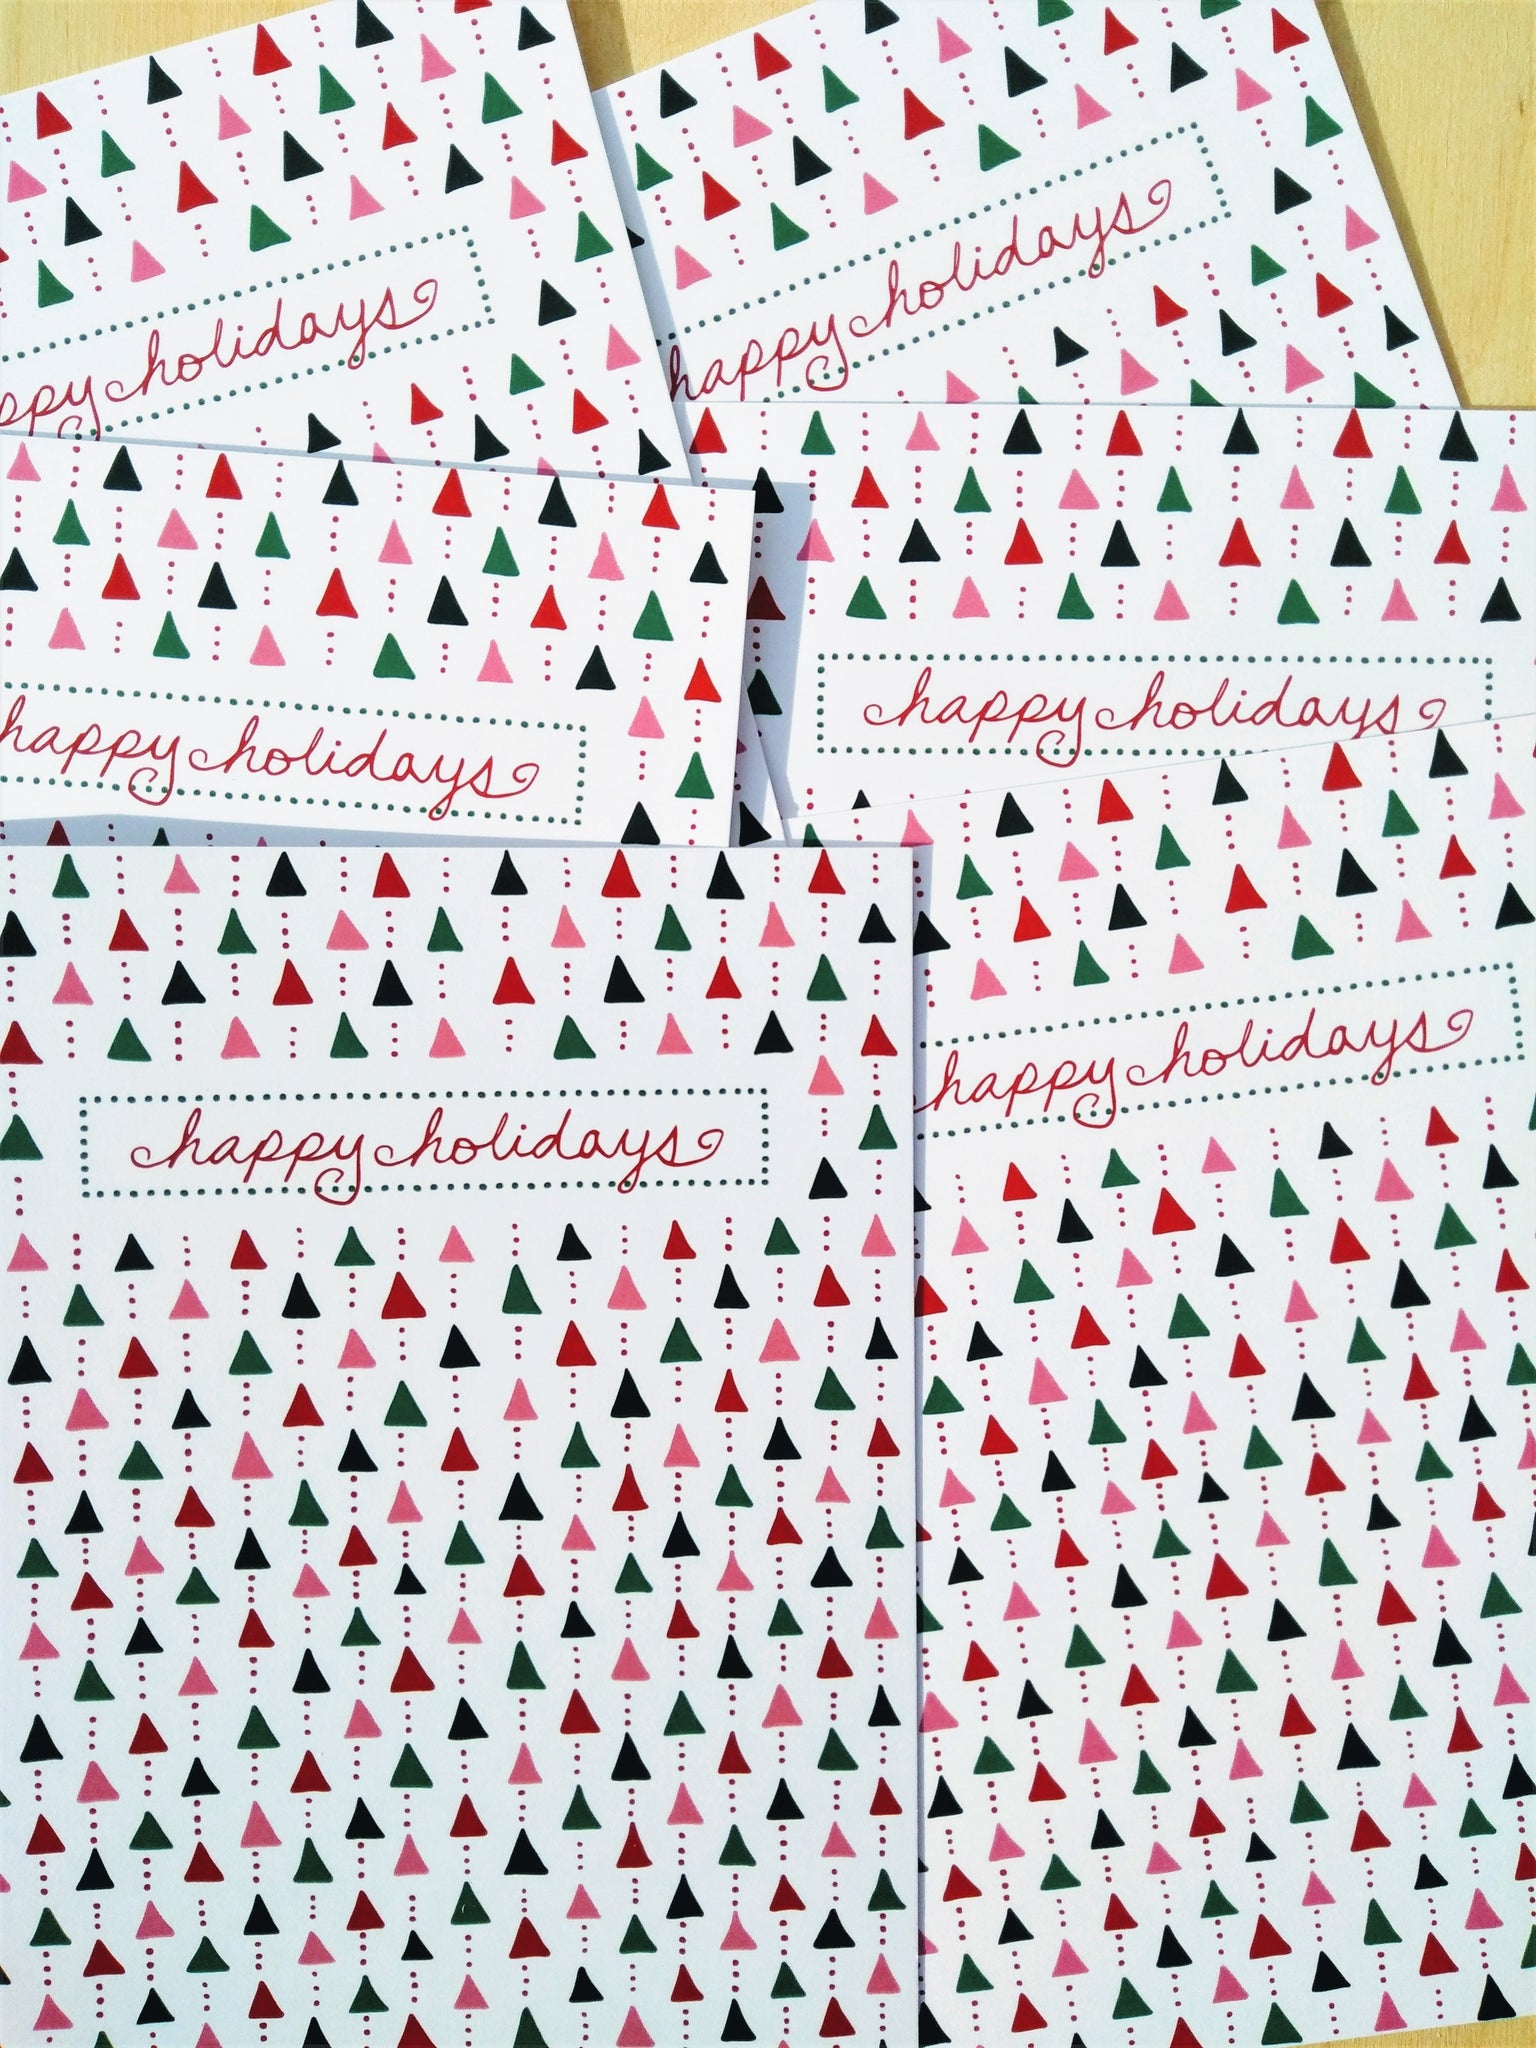 Trees and Dots Happy Holidays Greeting Card (Single or Set of 6)